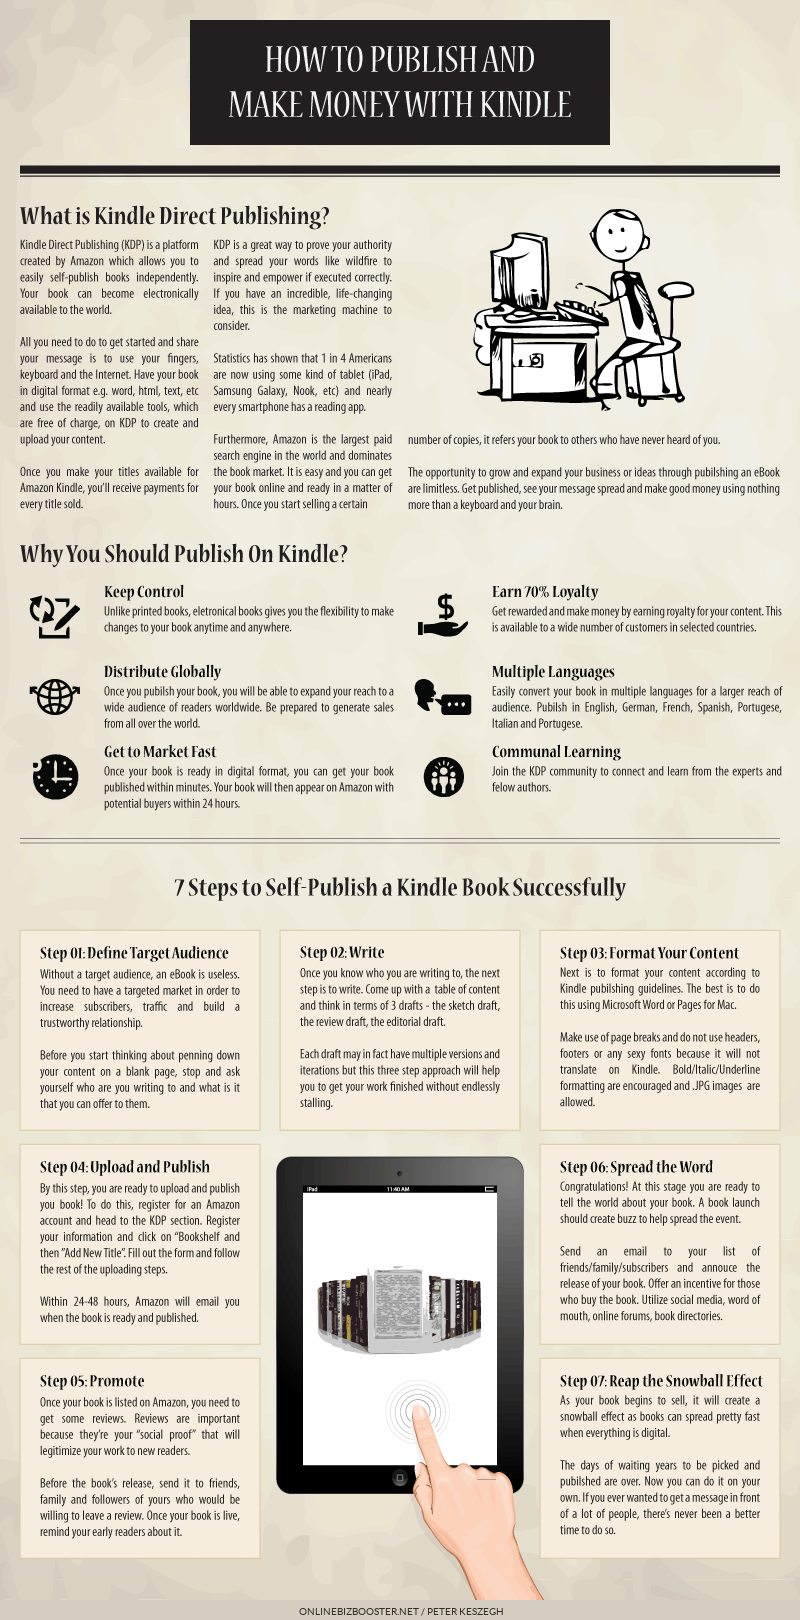 How-to-Publish-and-Make-Money-From-Kindle